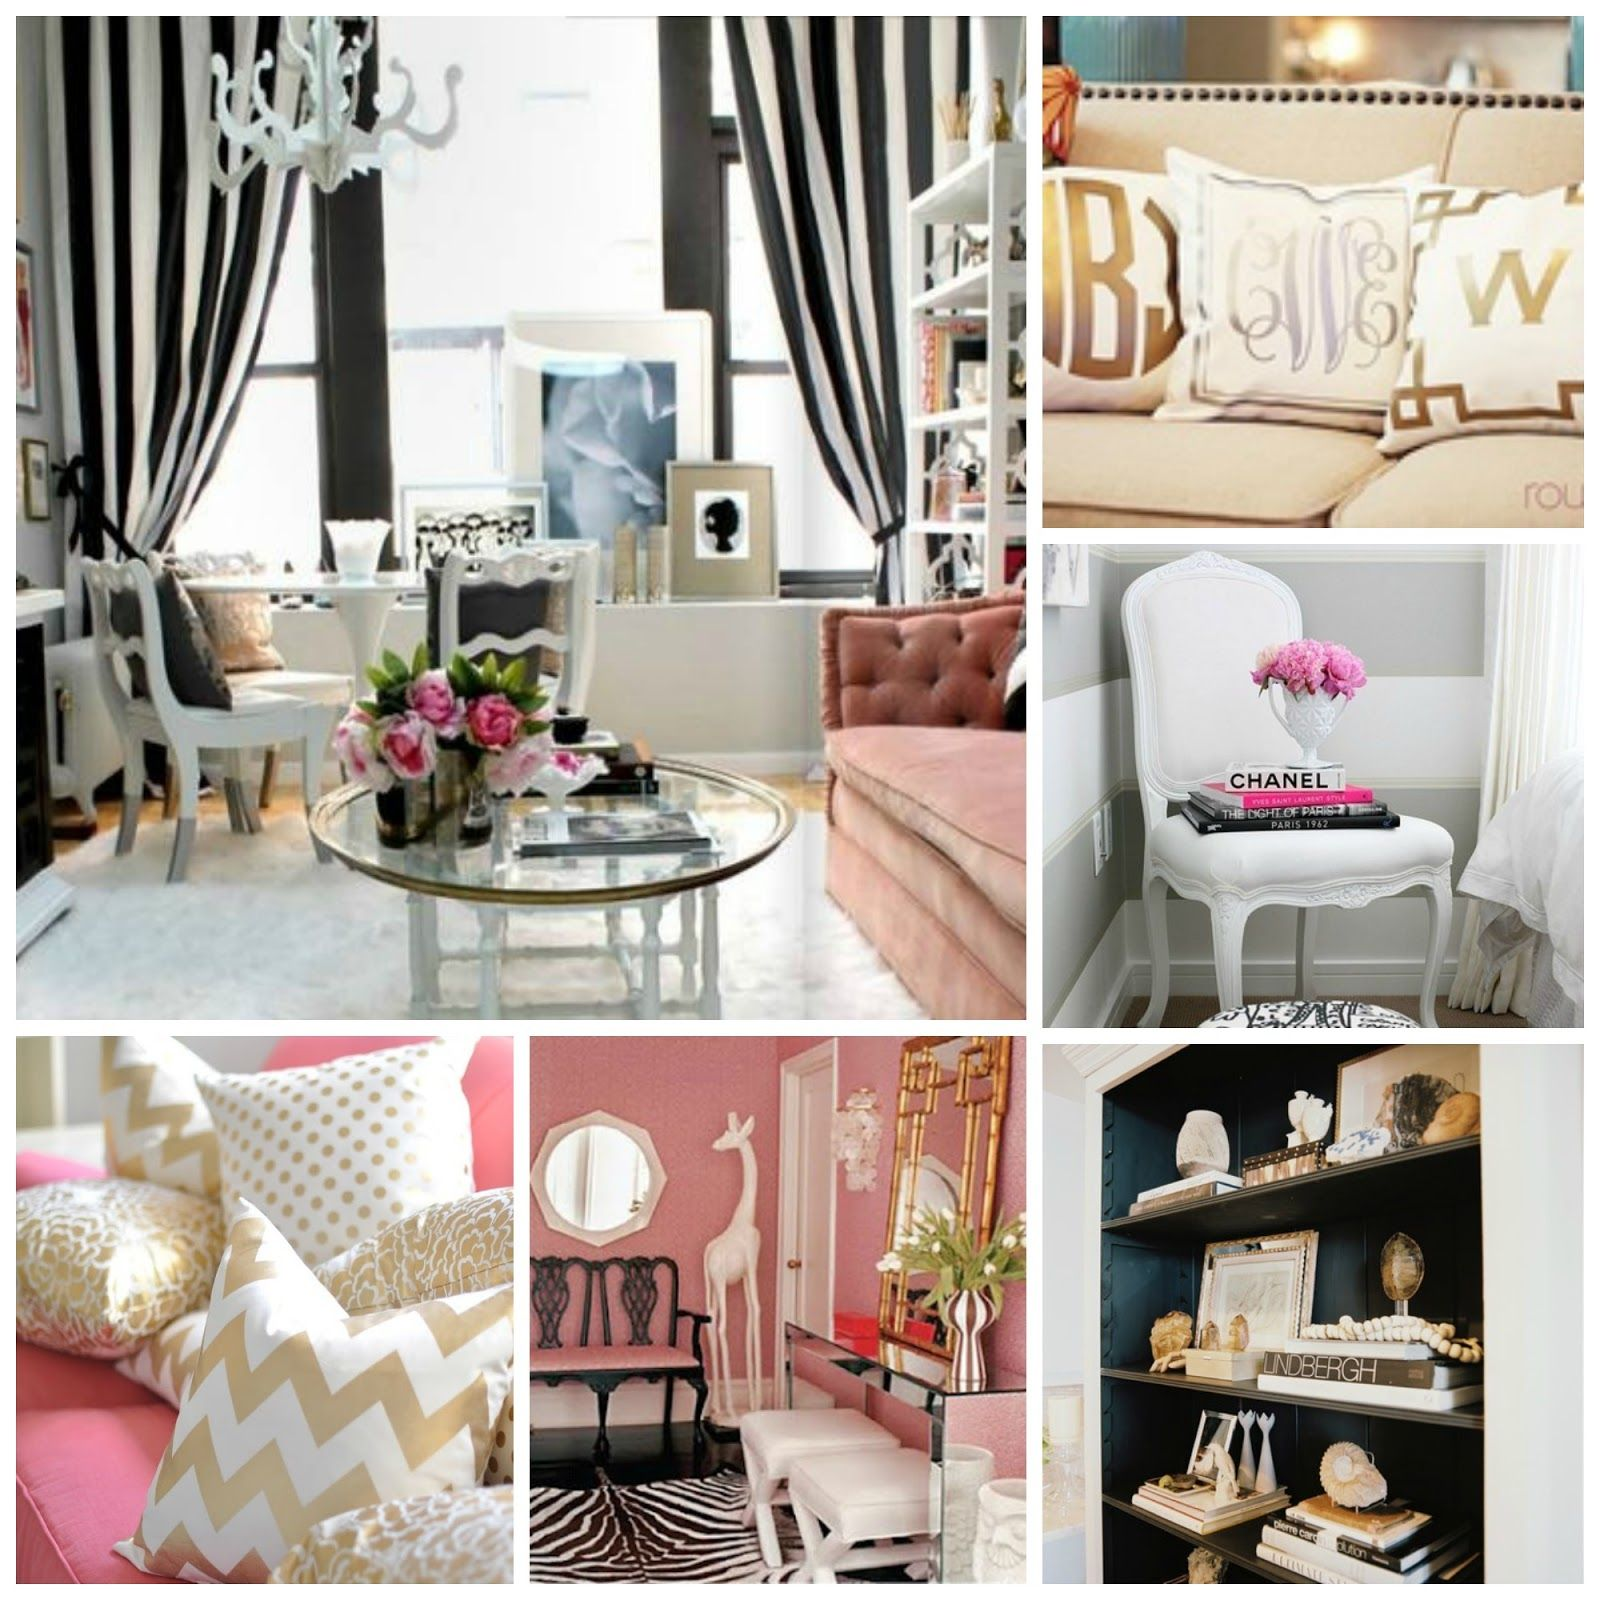 Black and white and pink bedrooms - Love The Black White Pink And Gold Theme So Classic And Girly